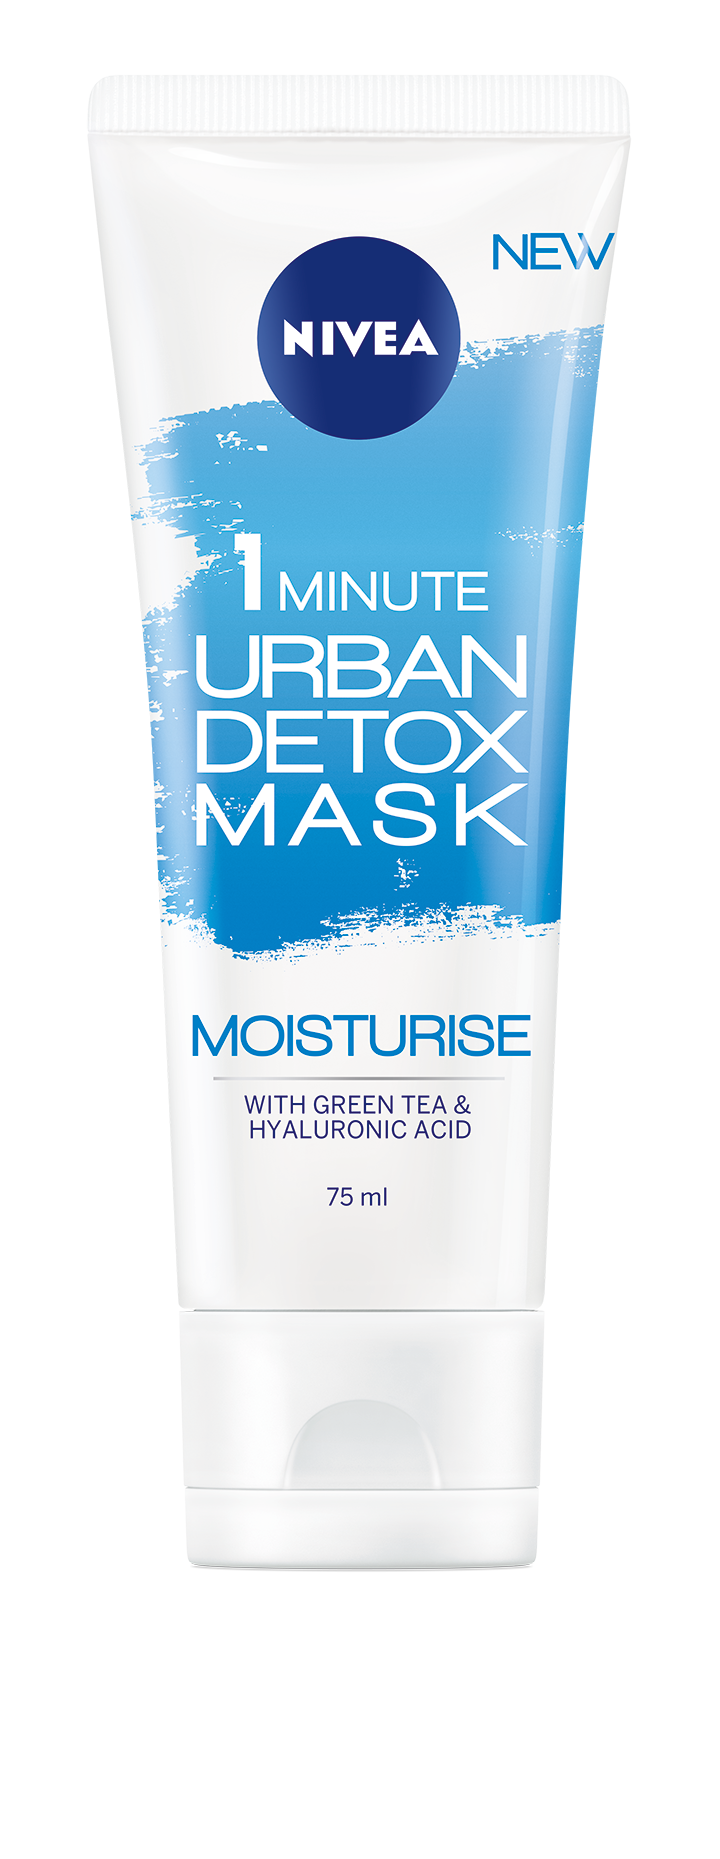 NIVEA_1_Minute_URBAN_Detox_Mask_Moisturise_75ml